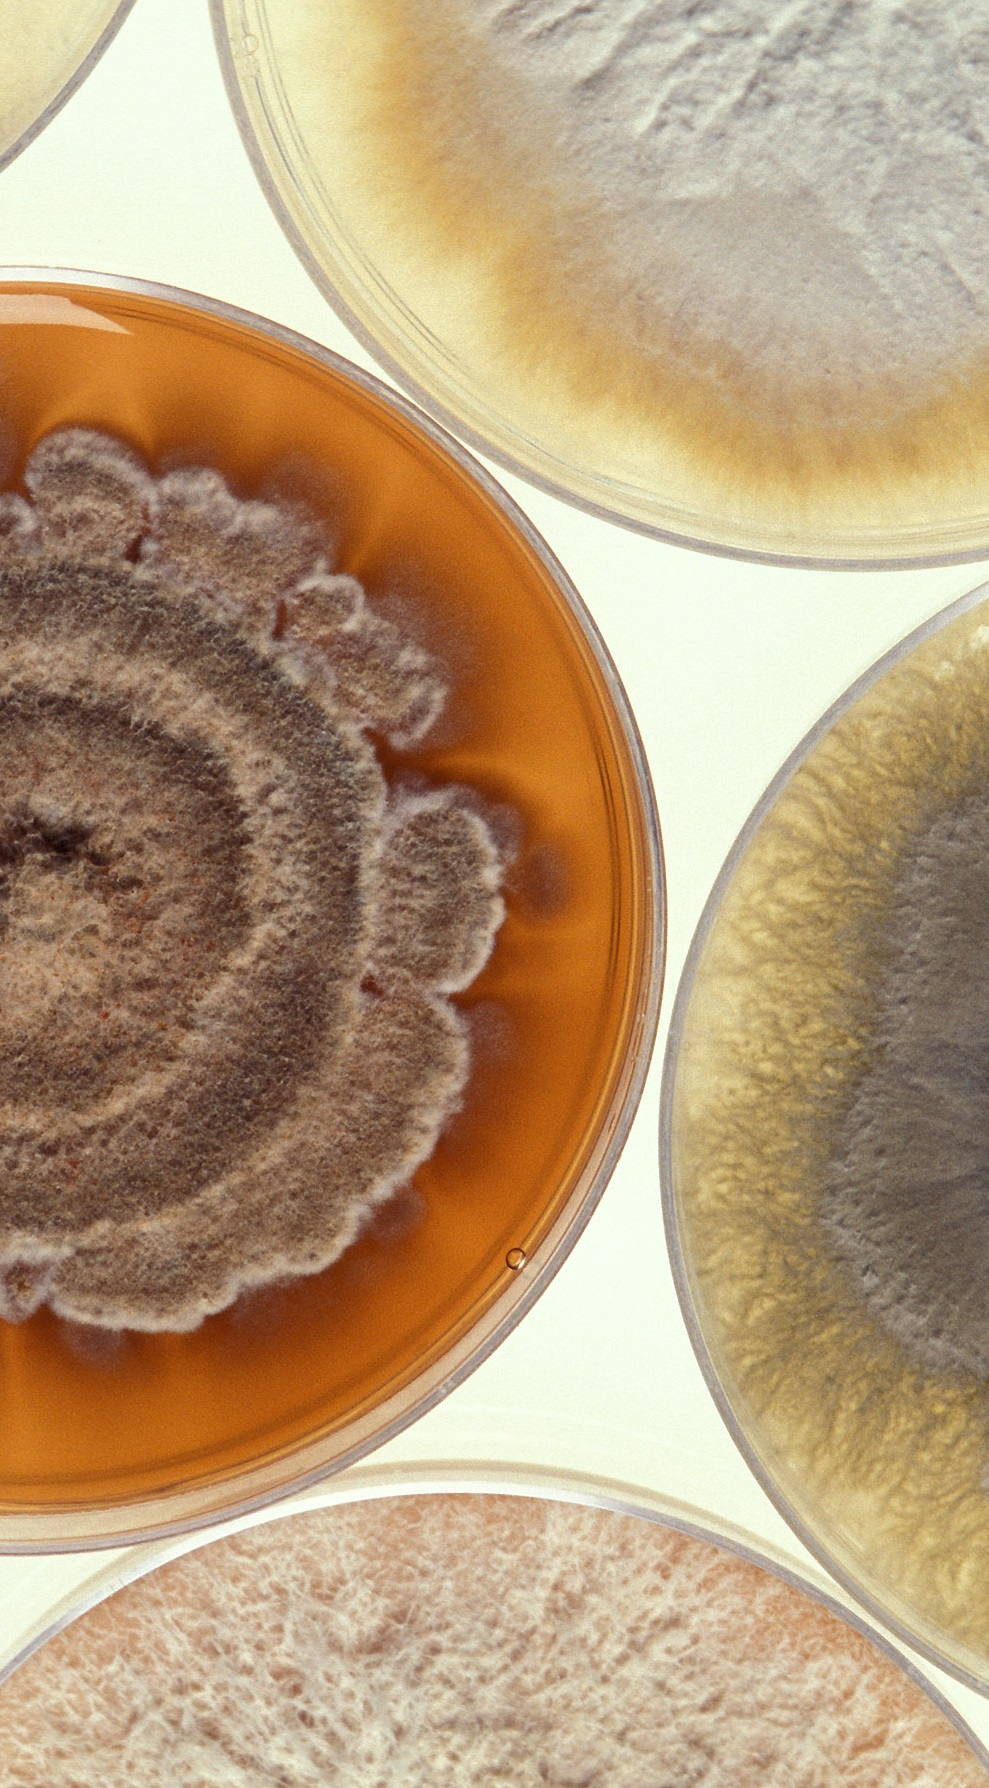 Cultures of a destructive mold called Phomopsis strains.